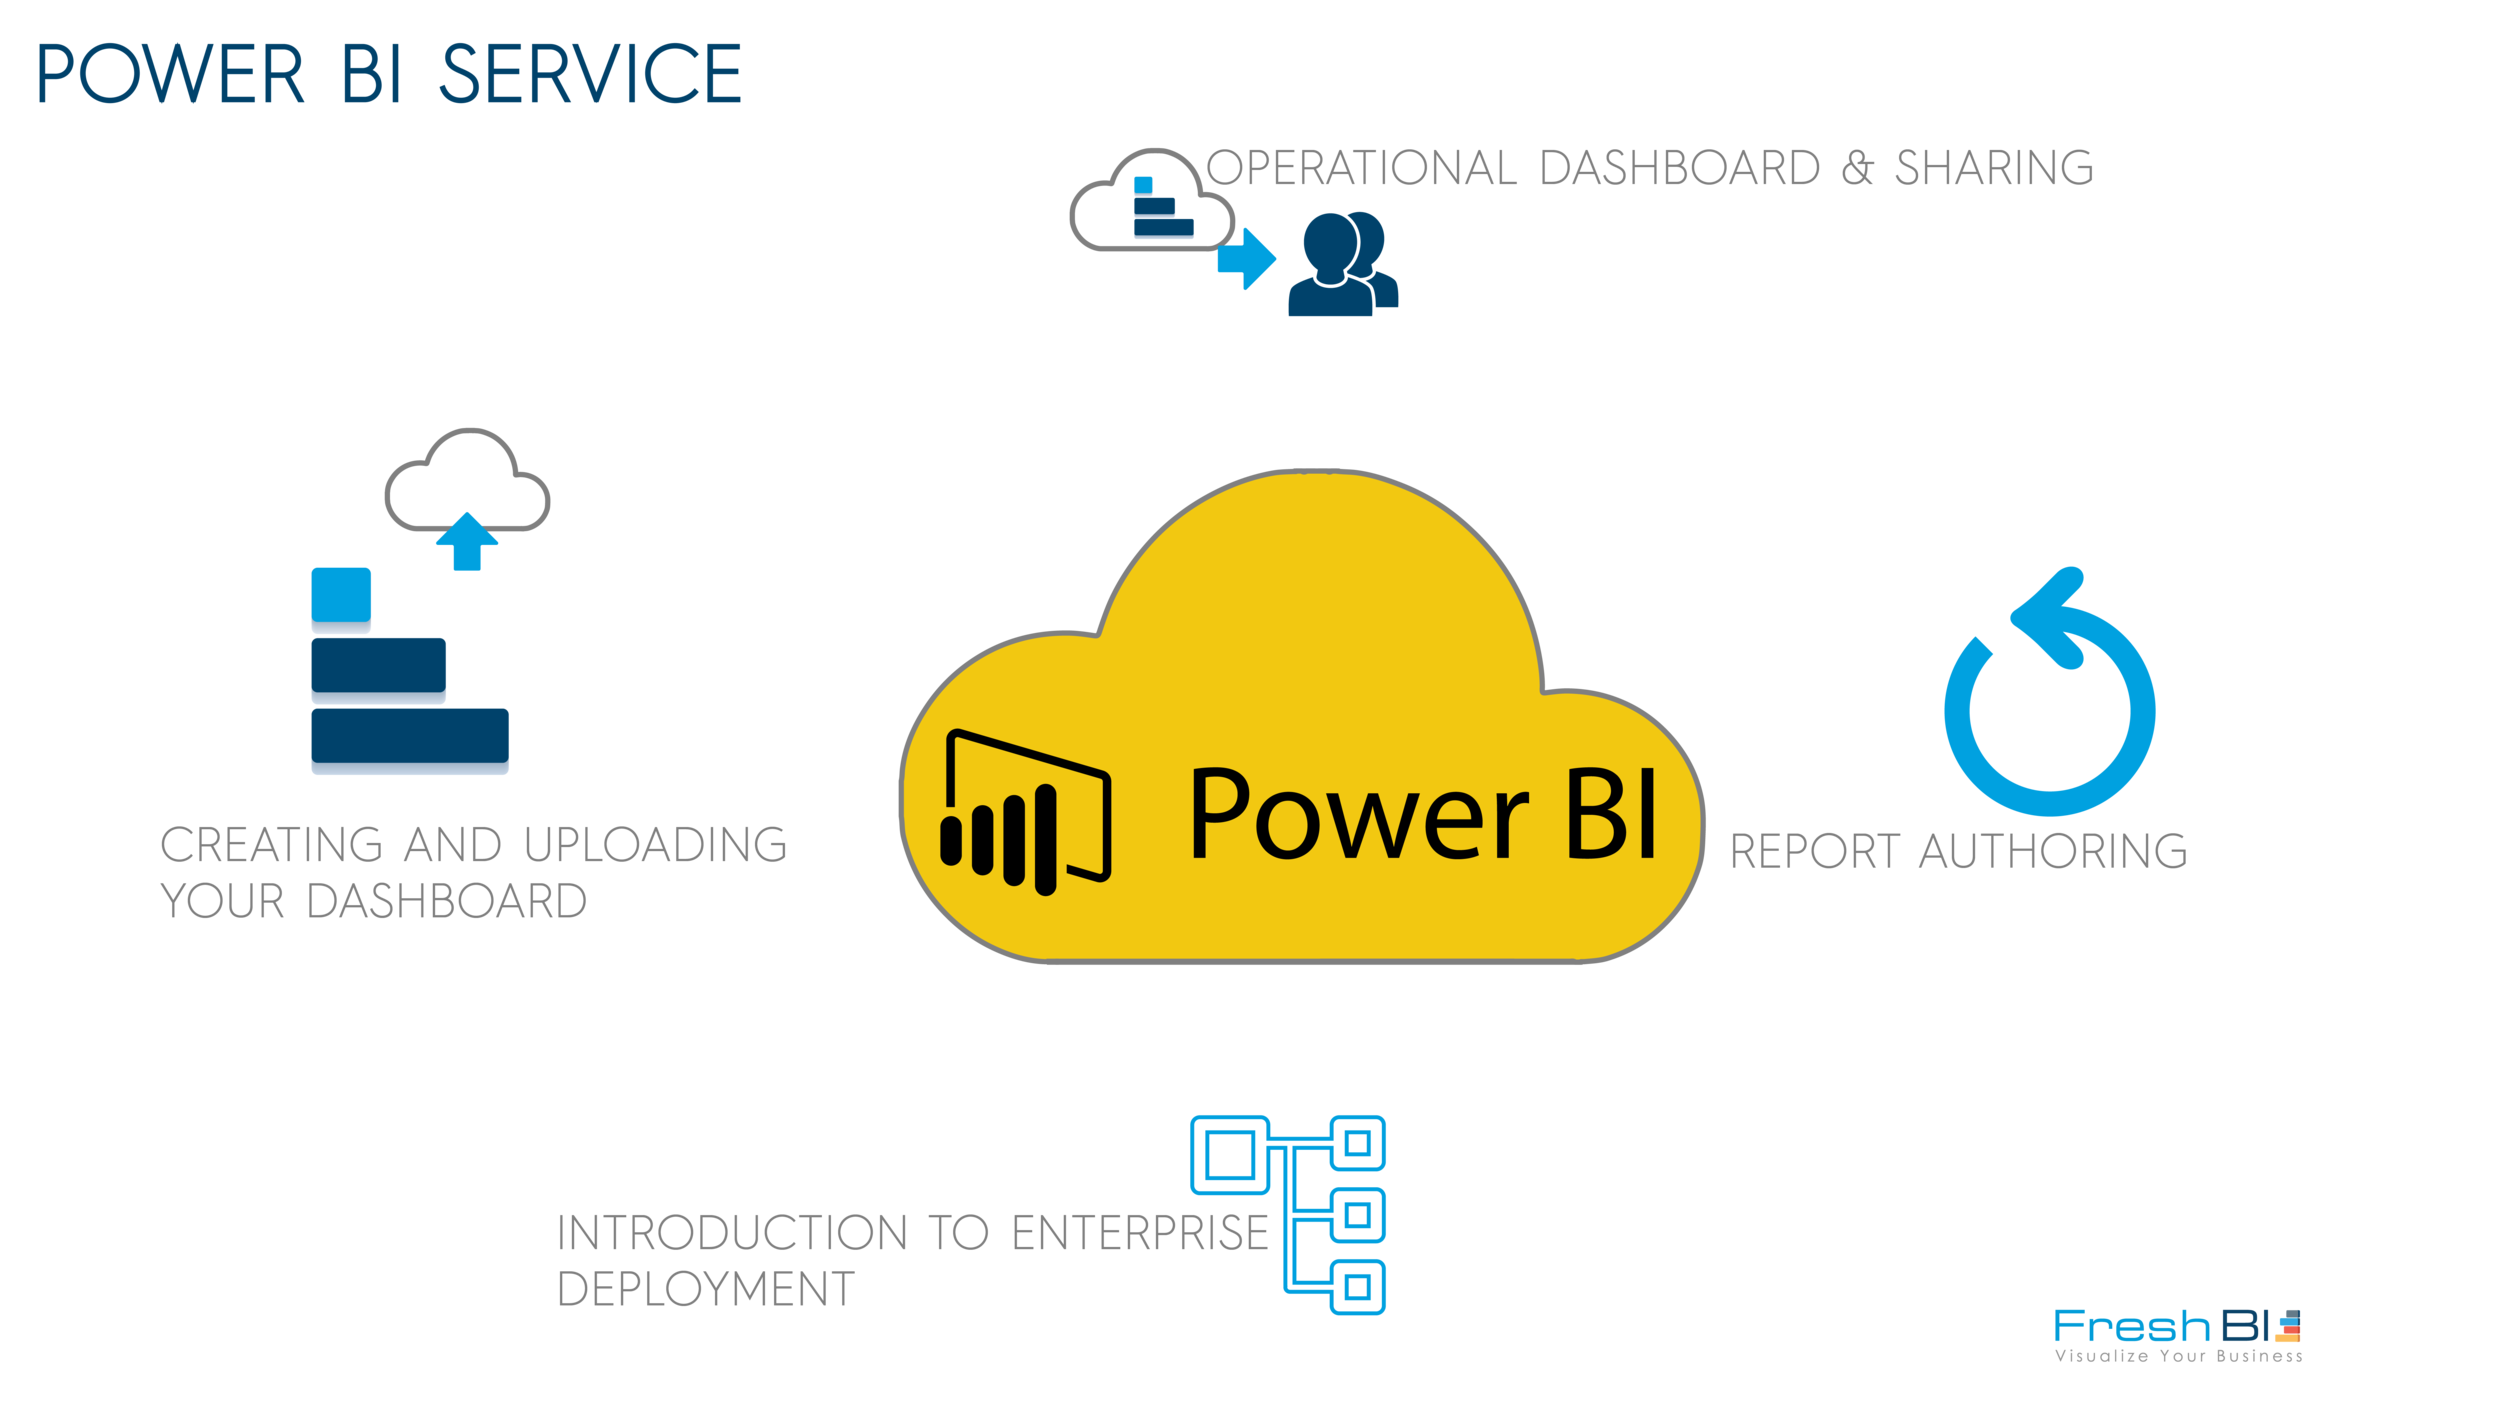 2) POWER BI SERVICE  Typically Solution Templates use either BLOB on Azure SQL for data storage.  This step creates a SQL database in Azure SQL in either an existing instance of Azure SQL or it creates a new Azure SQL instance.